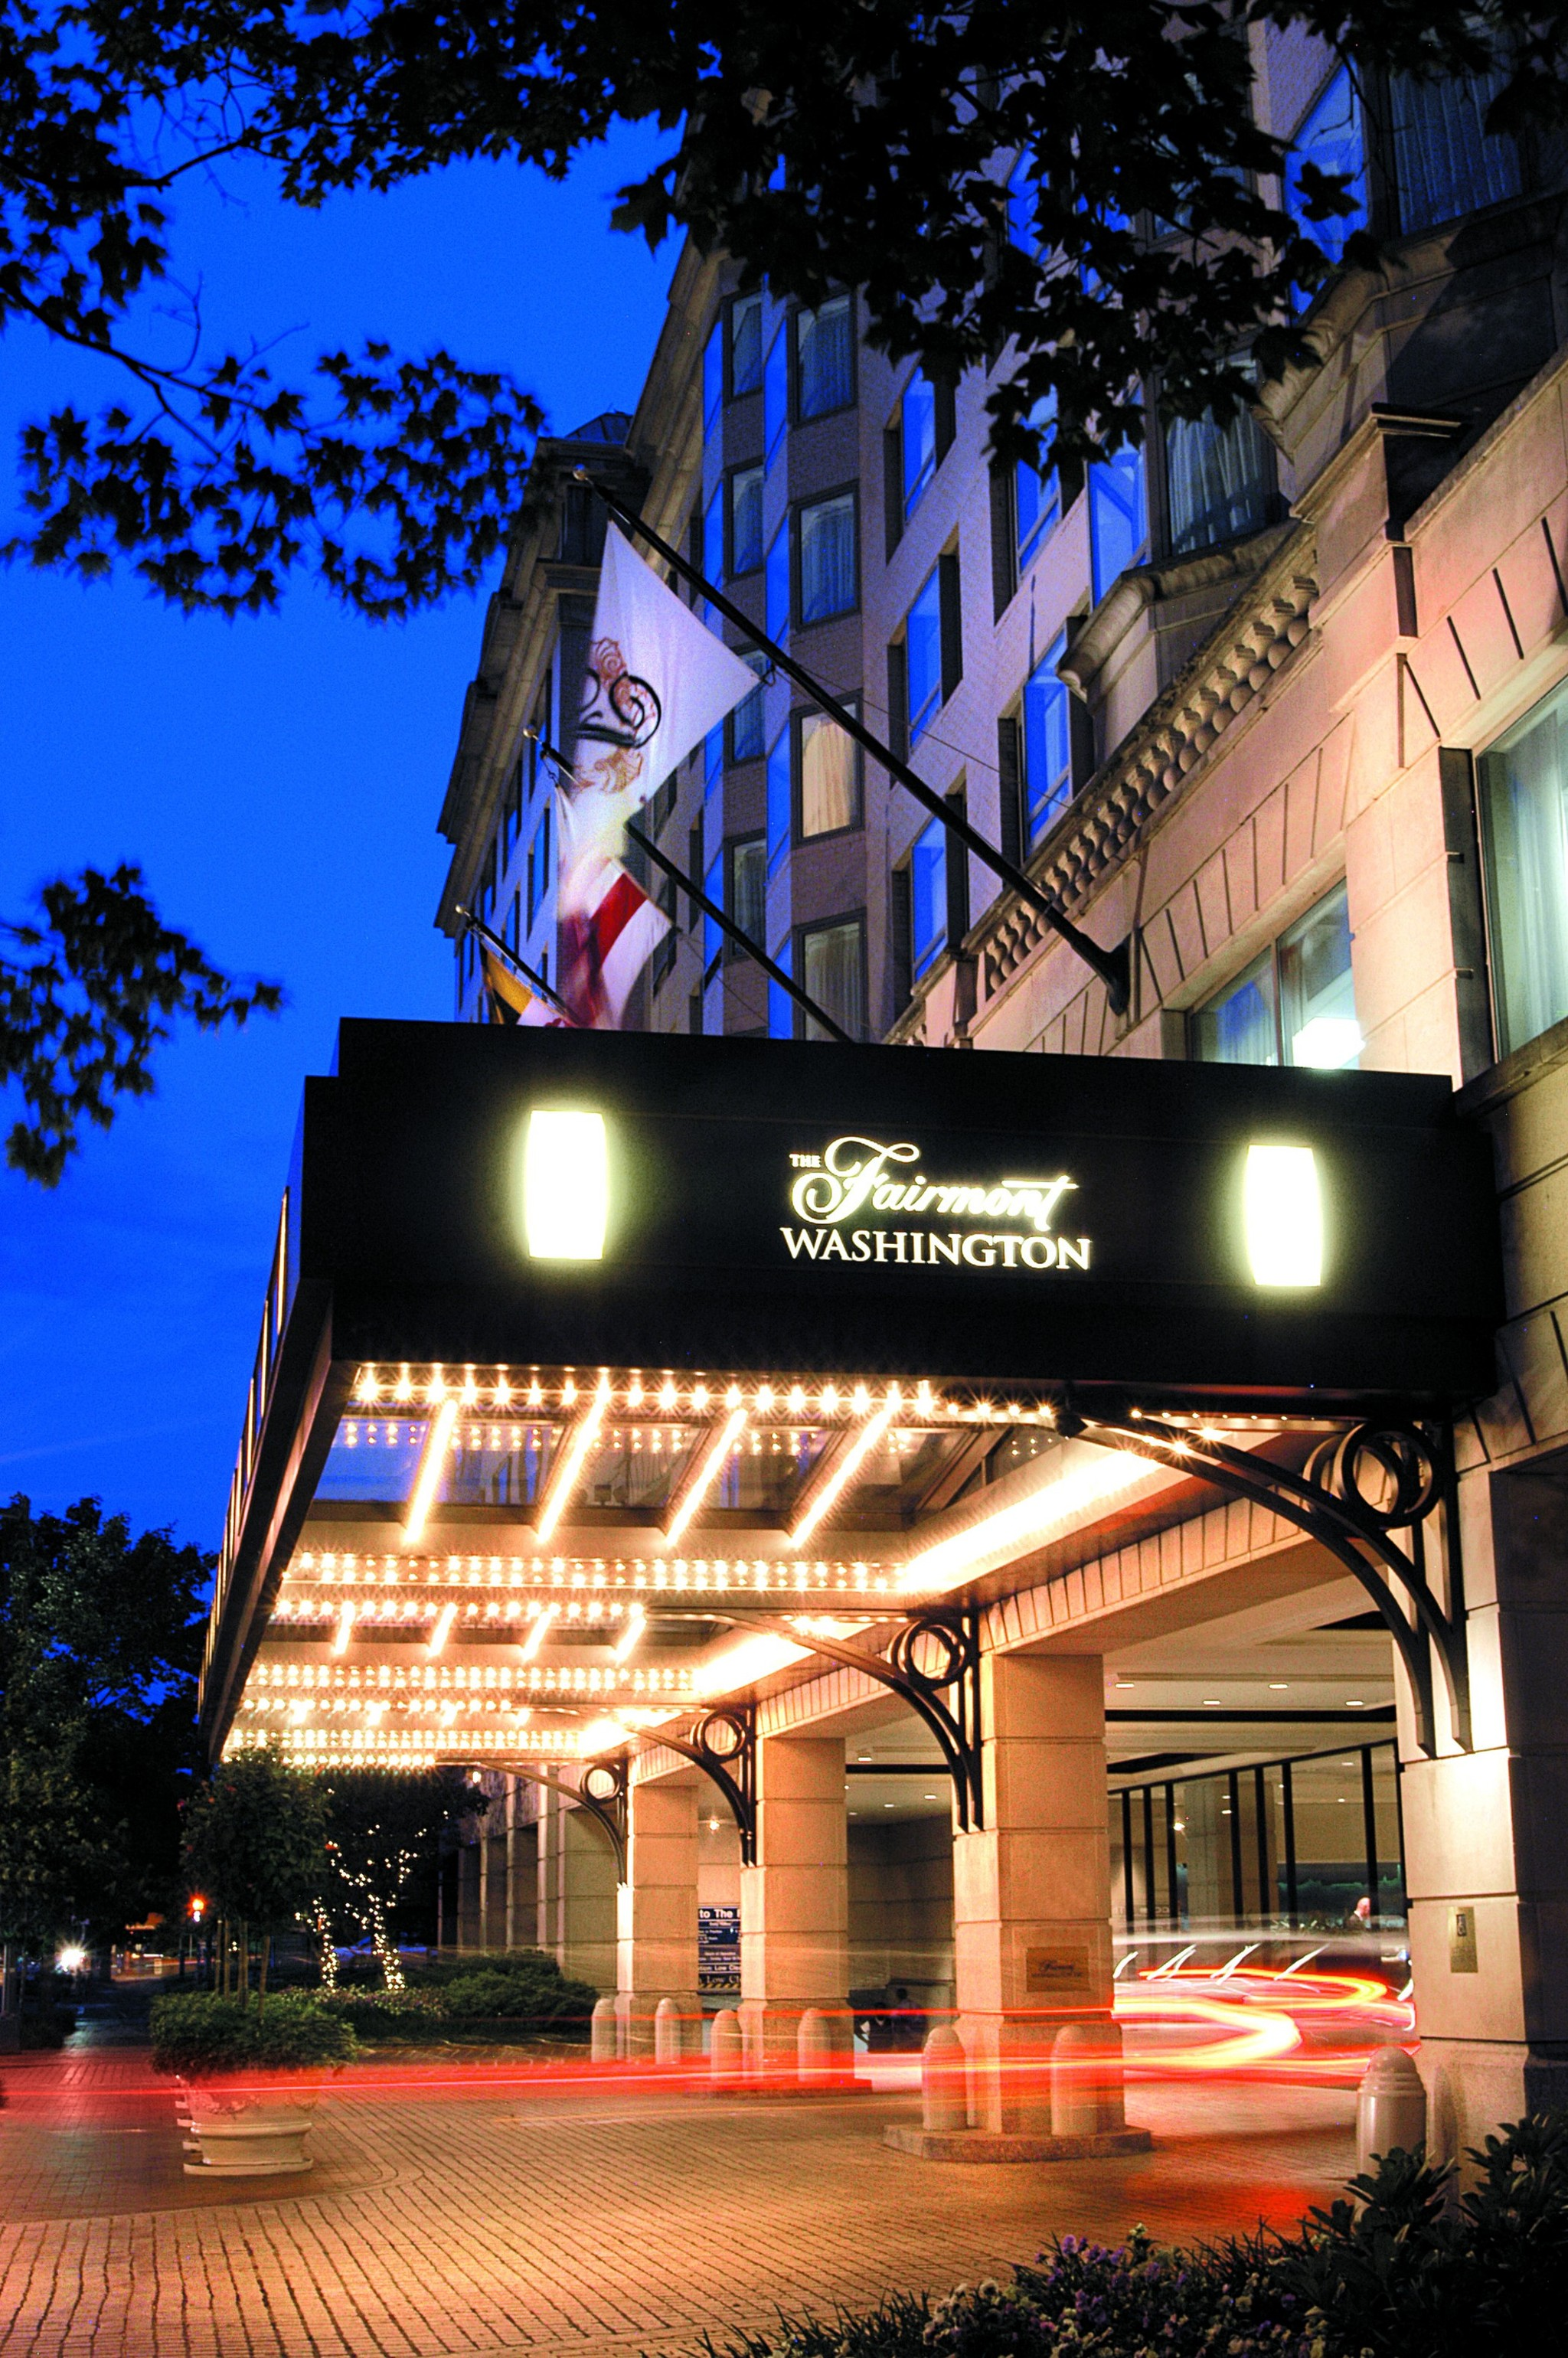 Fairmont Washington Georgetown